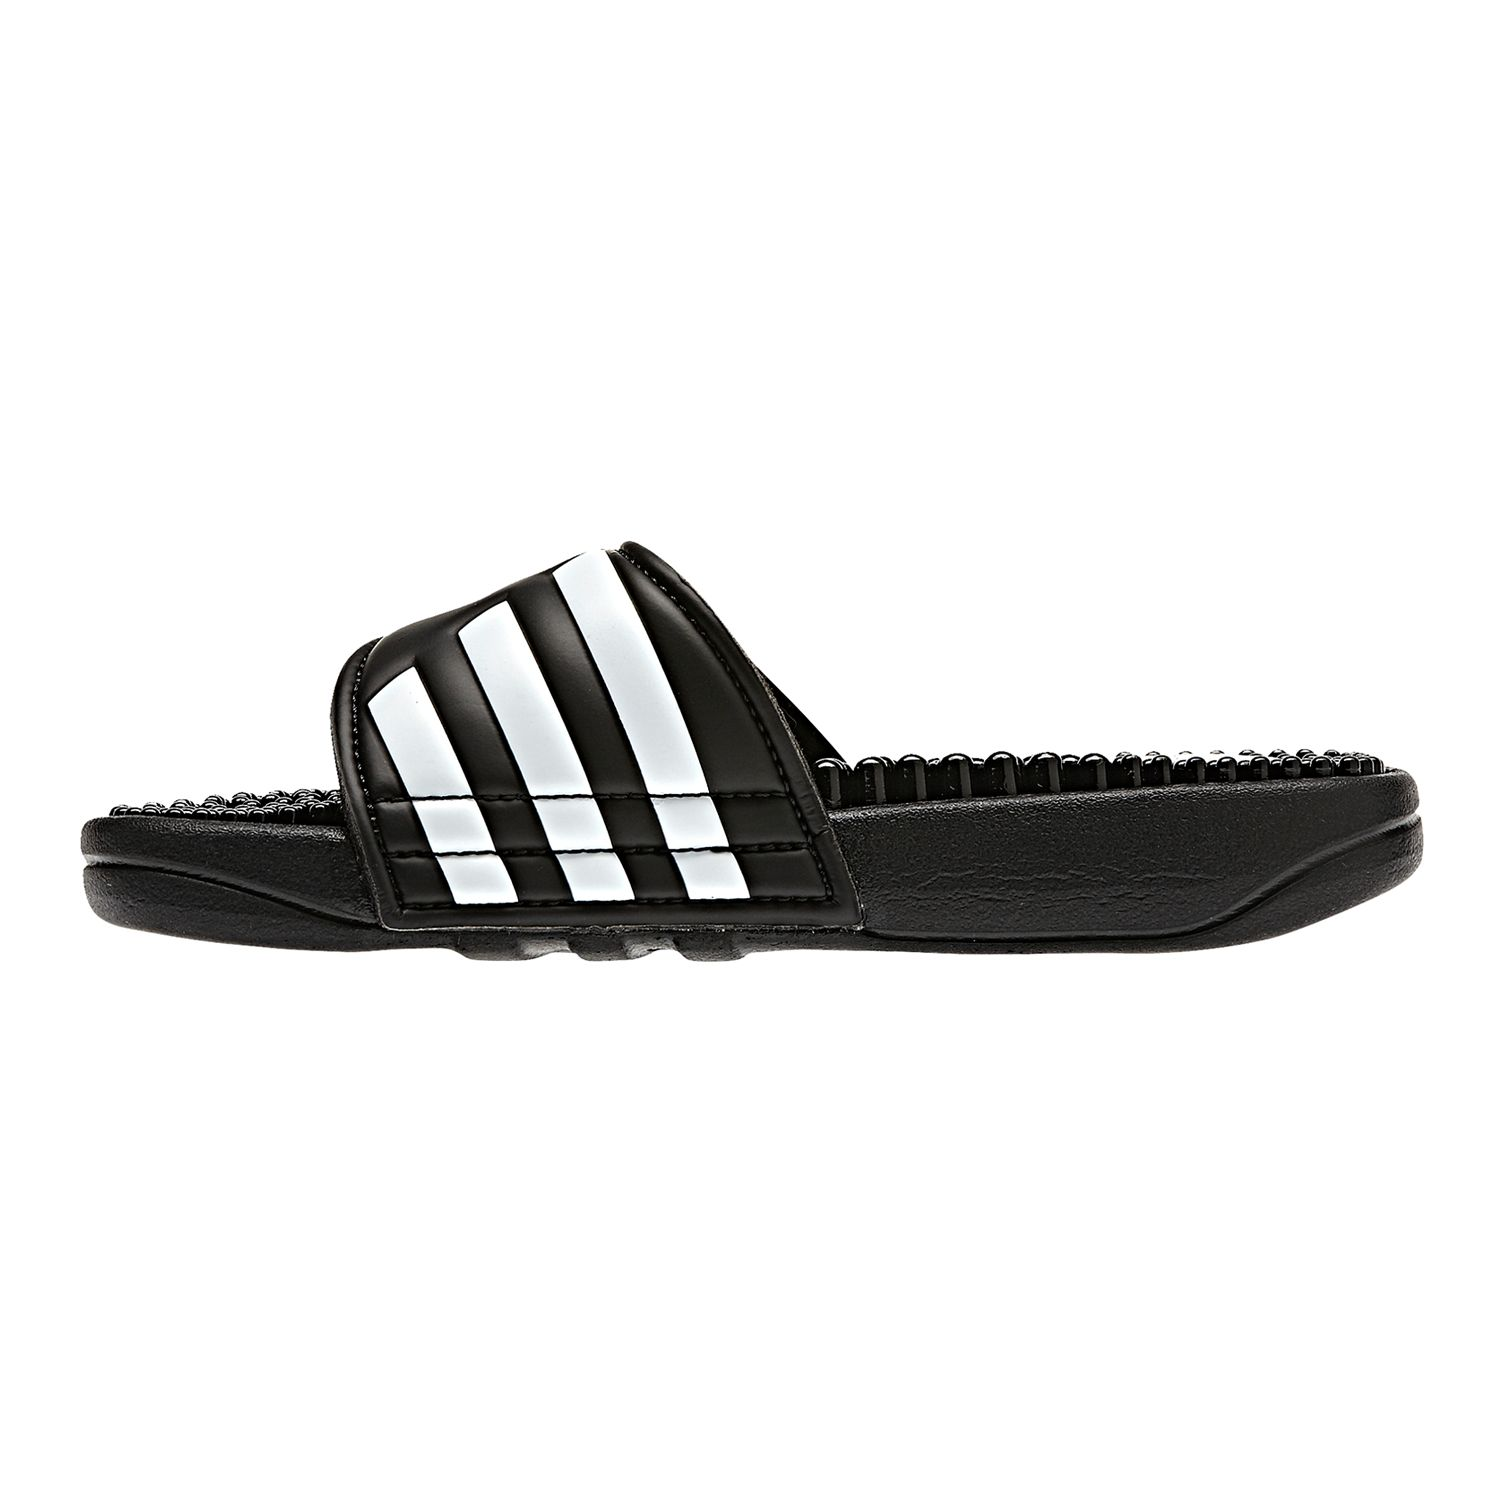 sale retailer 9c391 48a32 Adidas Sandals - Shoes  Kohls